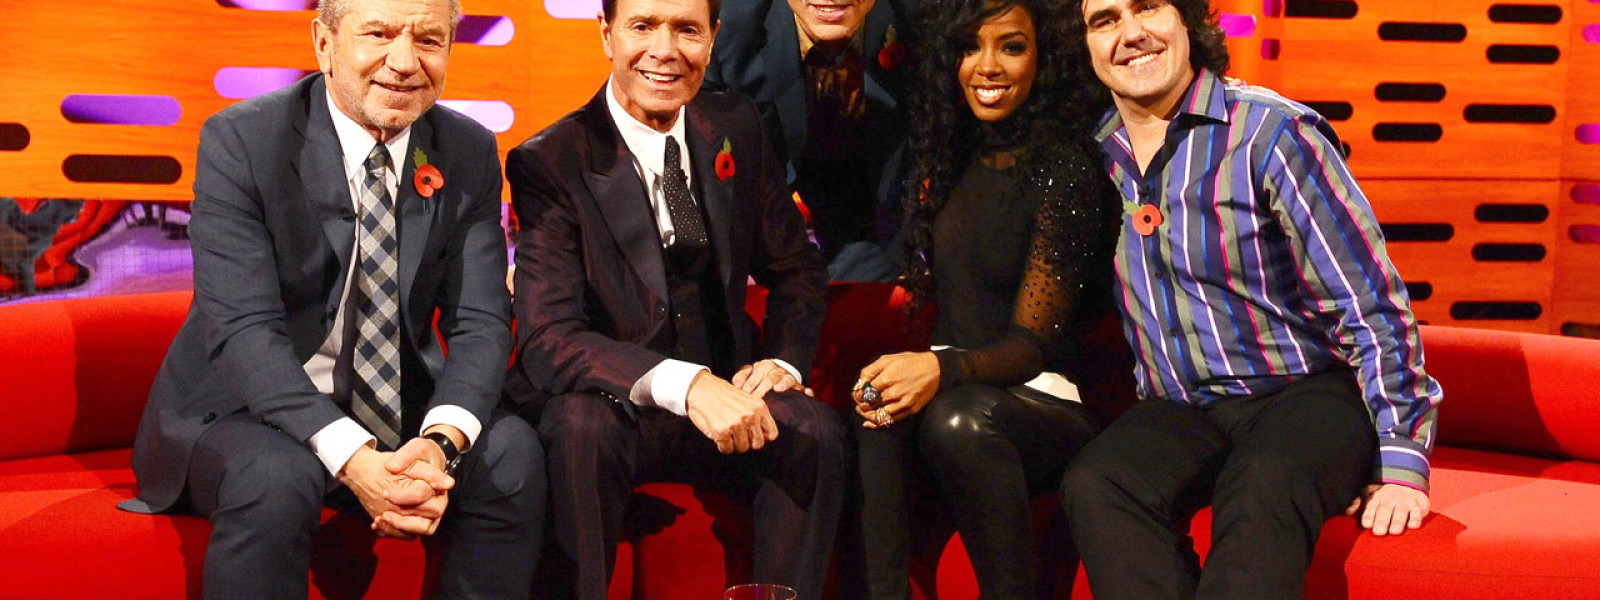 thegrahamnortonshow_photo_s10_e04_04_web